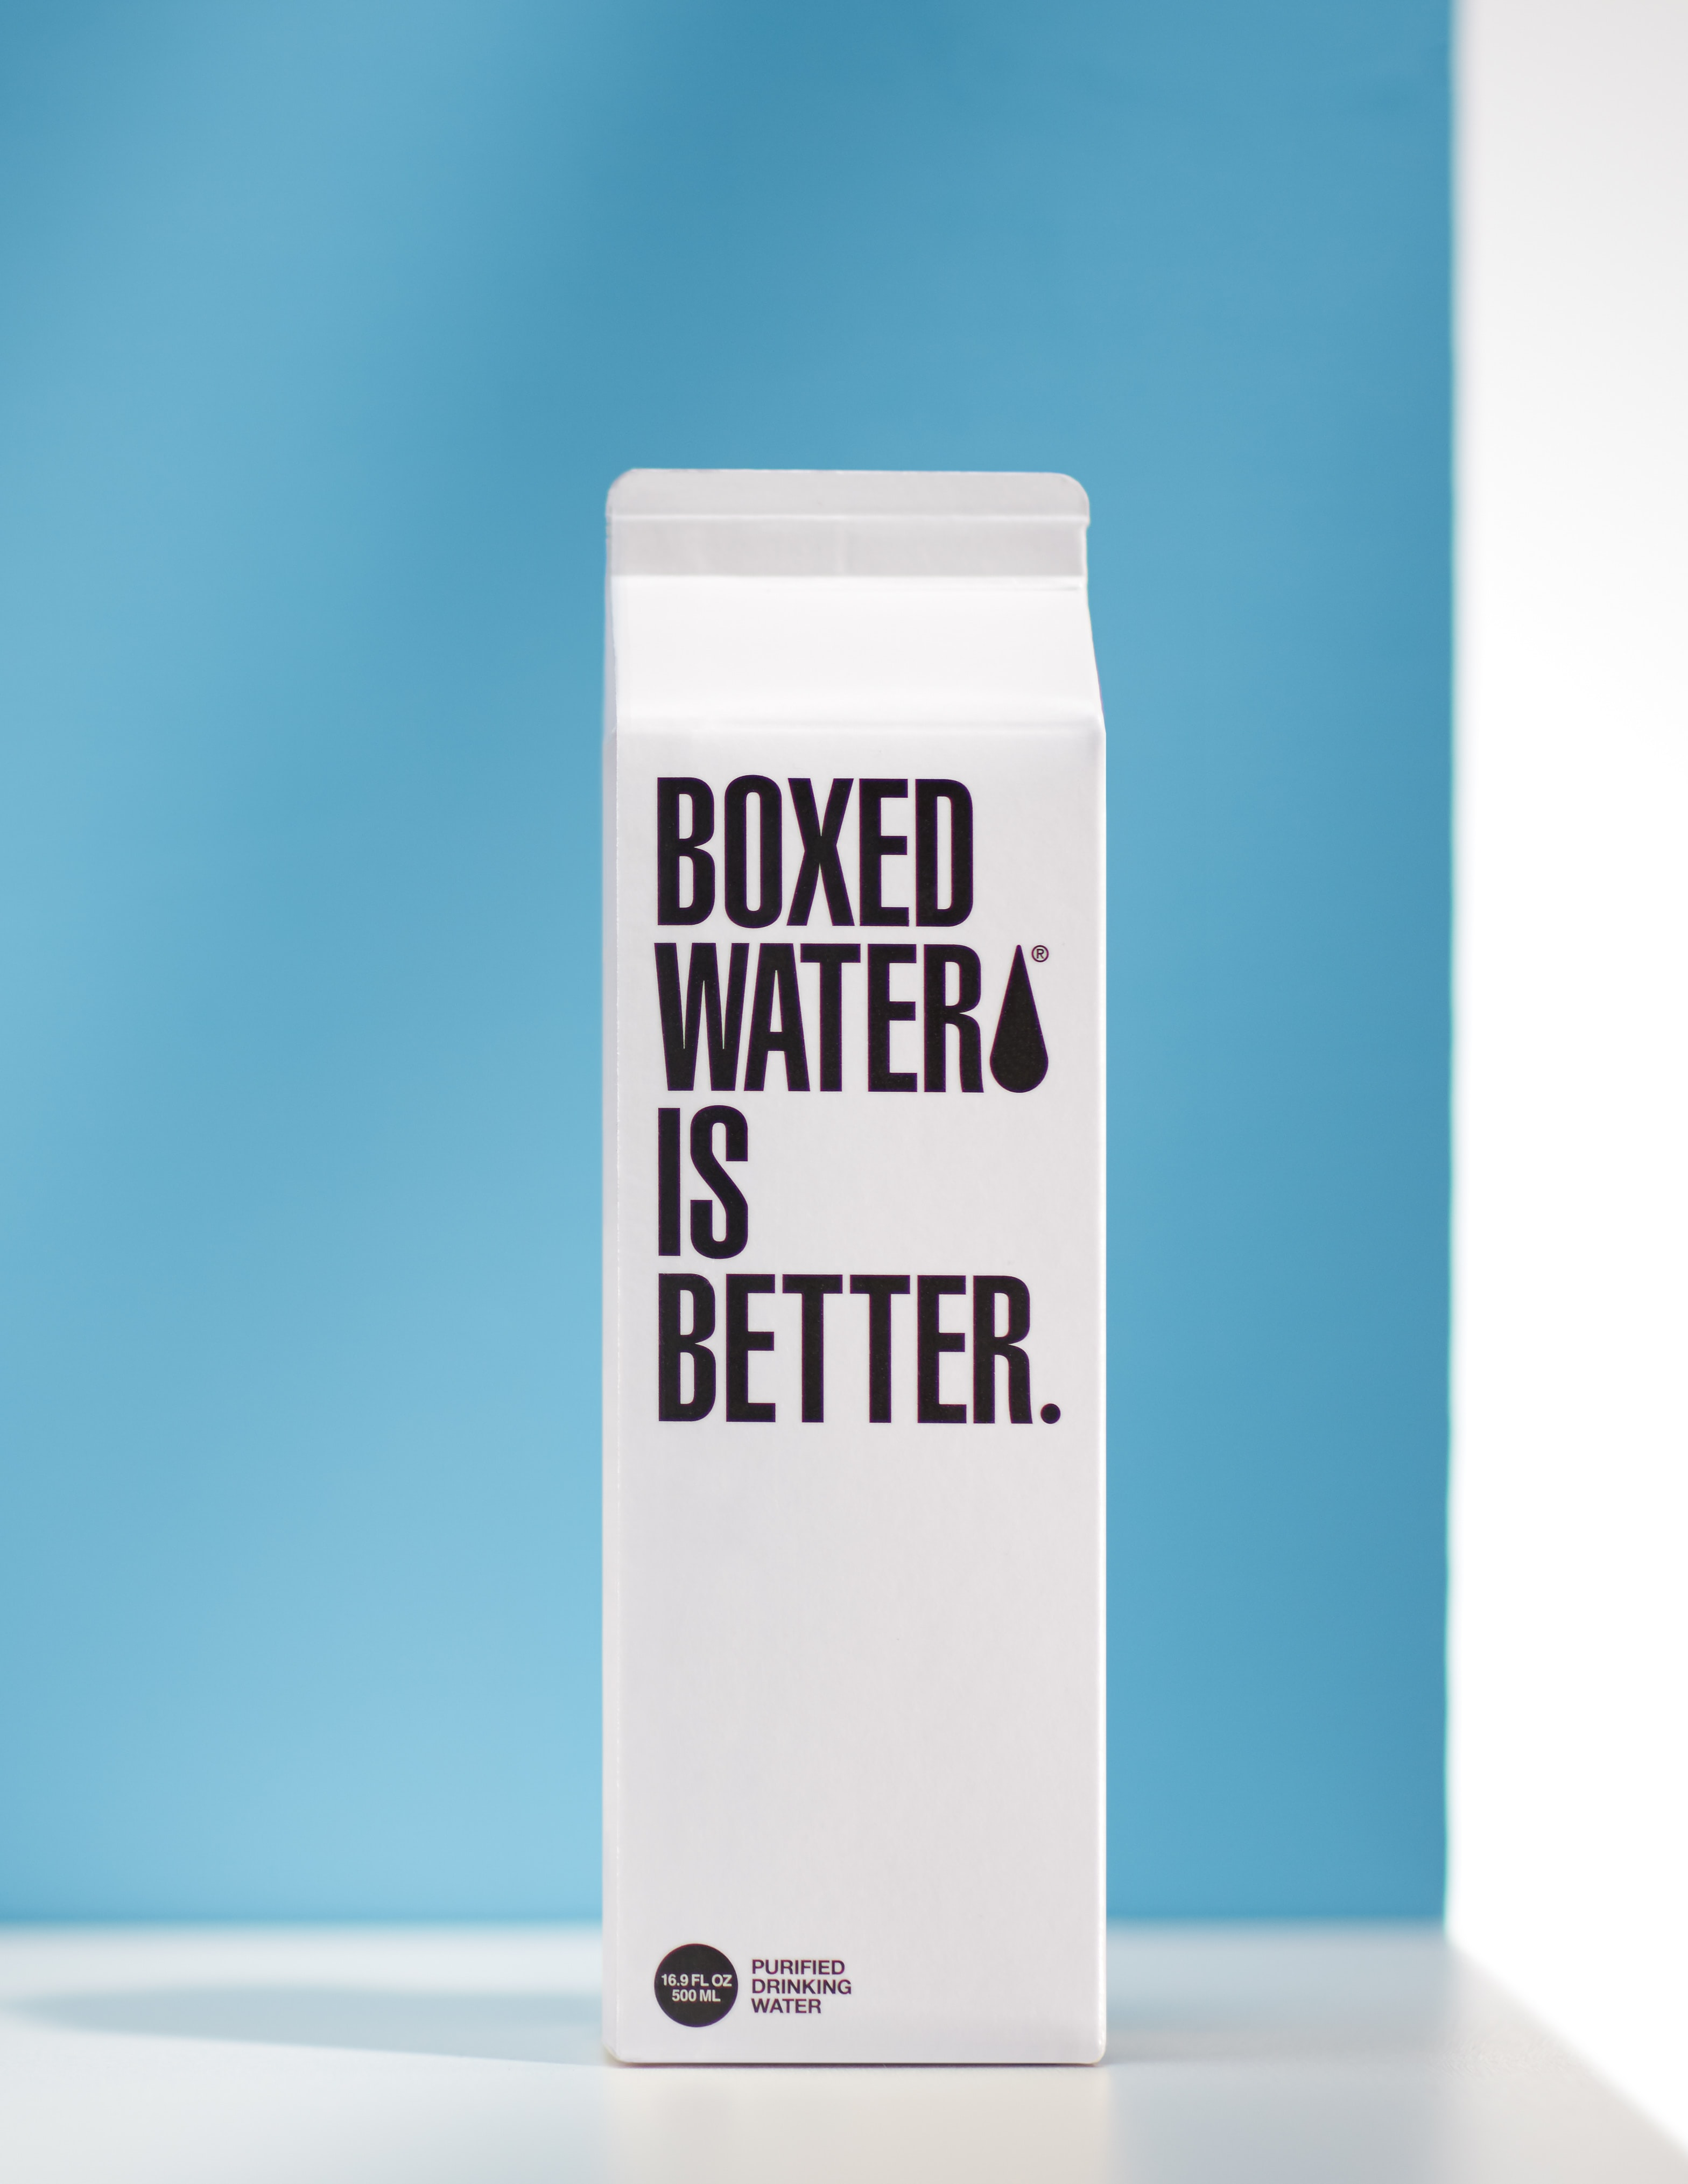 A Boxed Water carton labeled with Boxed Water is Better